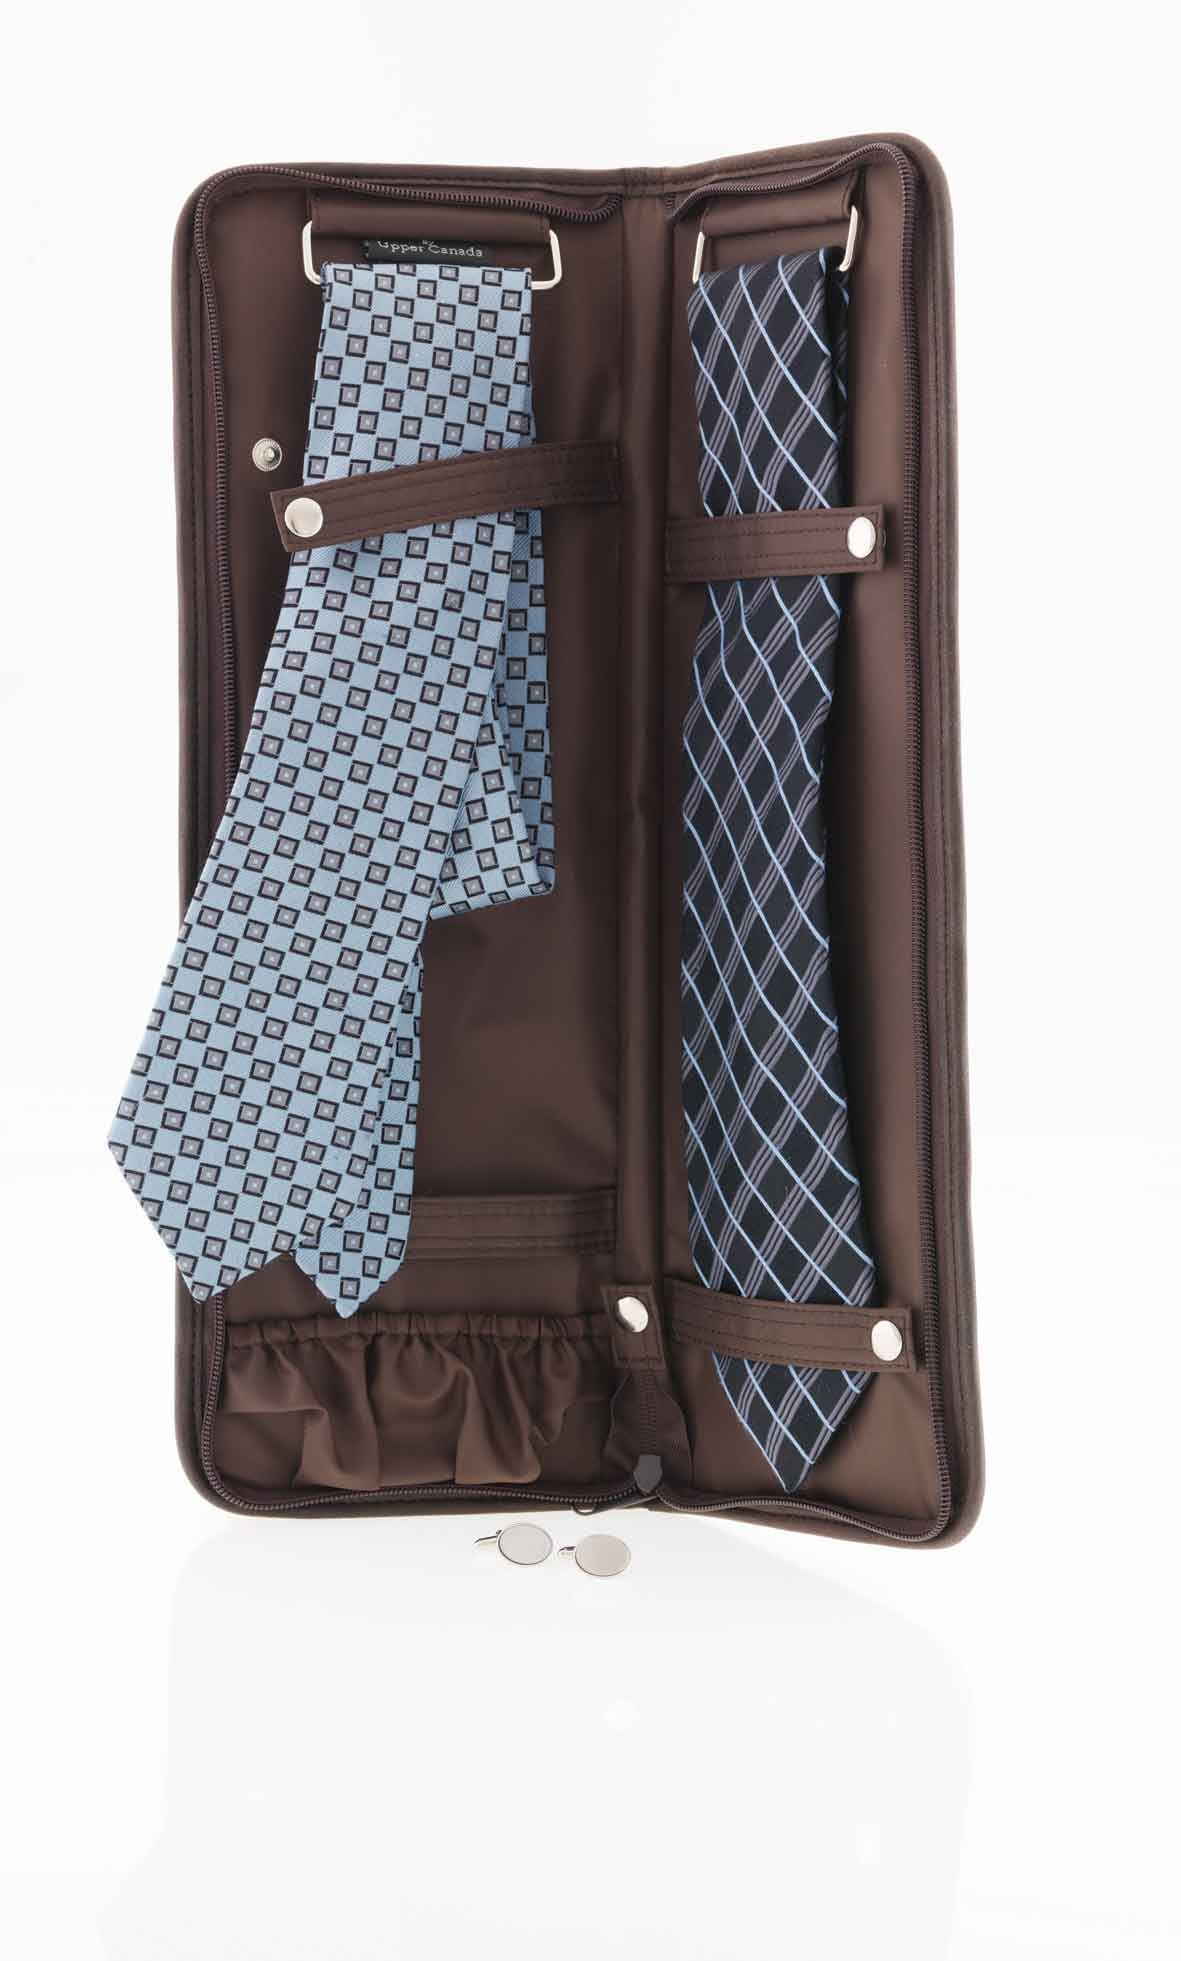 7311e2982d8 You don t need a separate leather bag for your travelling ties